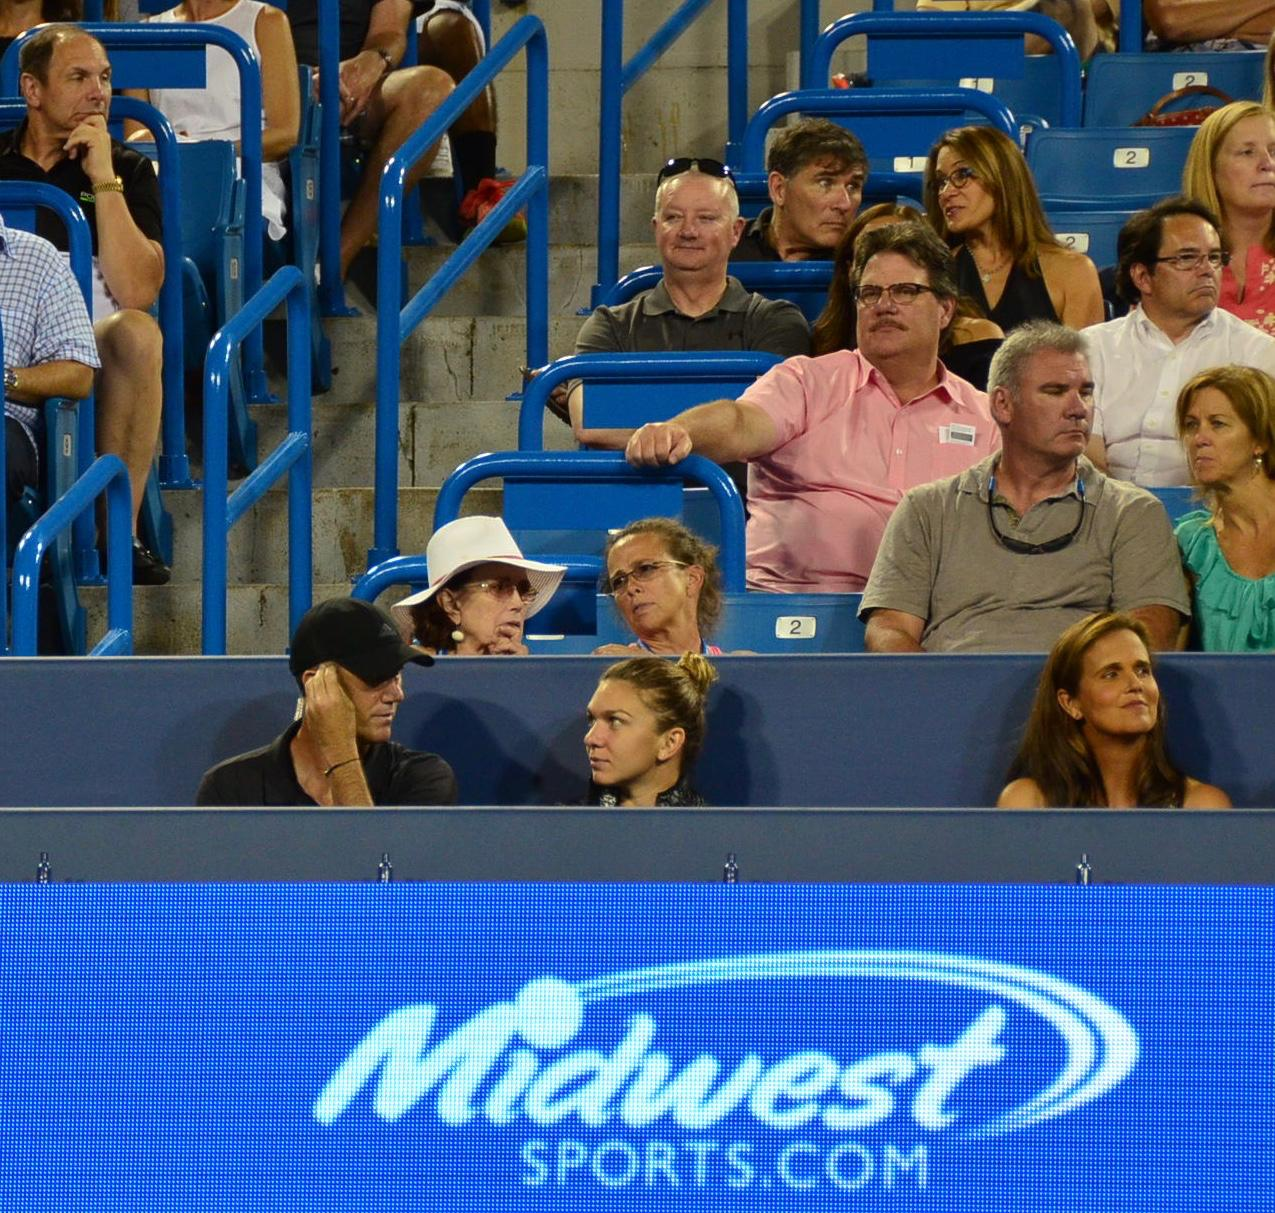 Darren Cahill and Simona Halep sitting on the court, taking in some of the men's matches / Image: Leah Zipperstein, Cincinnati Refined // Published: 8.21.17